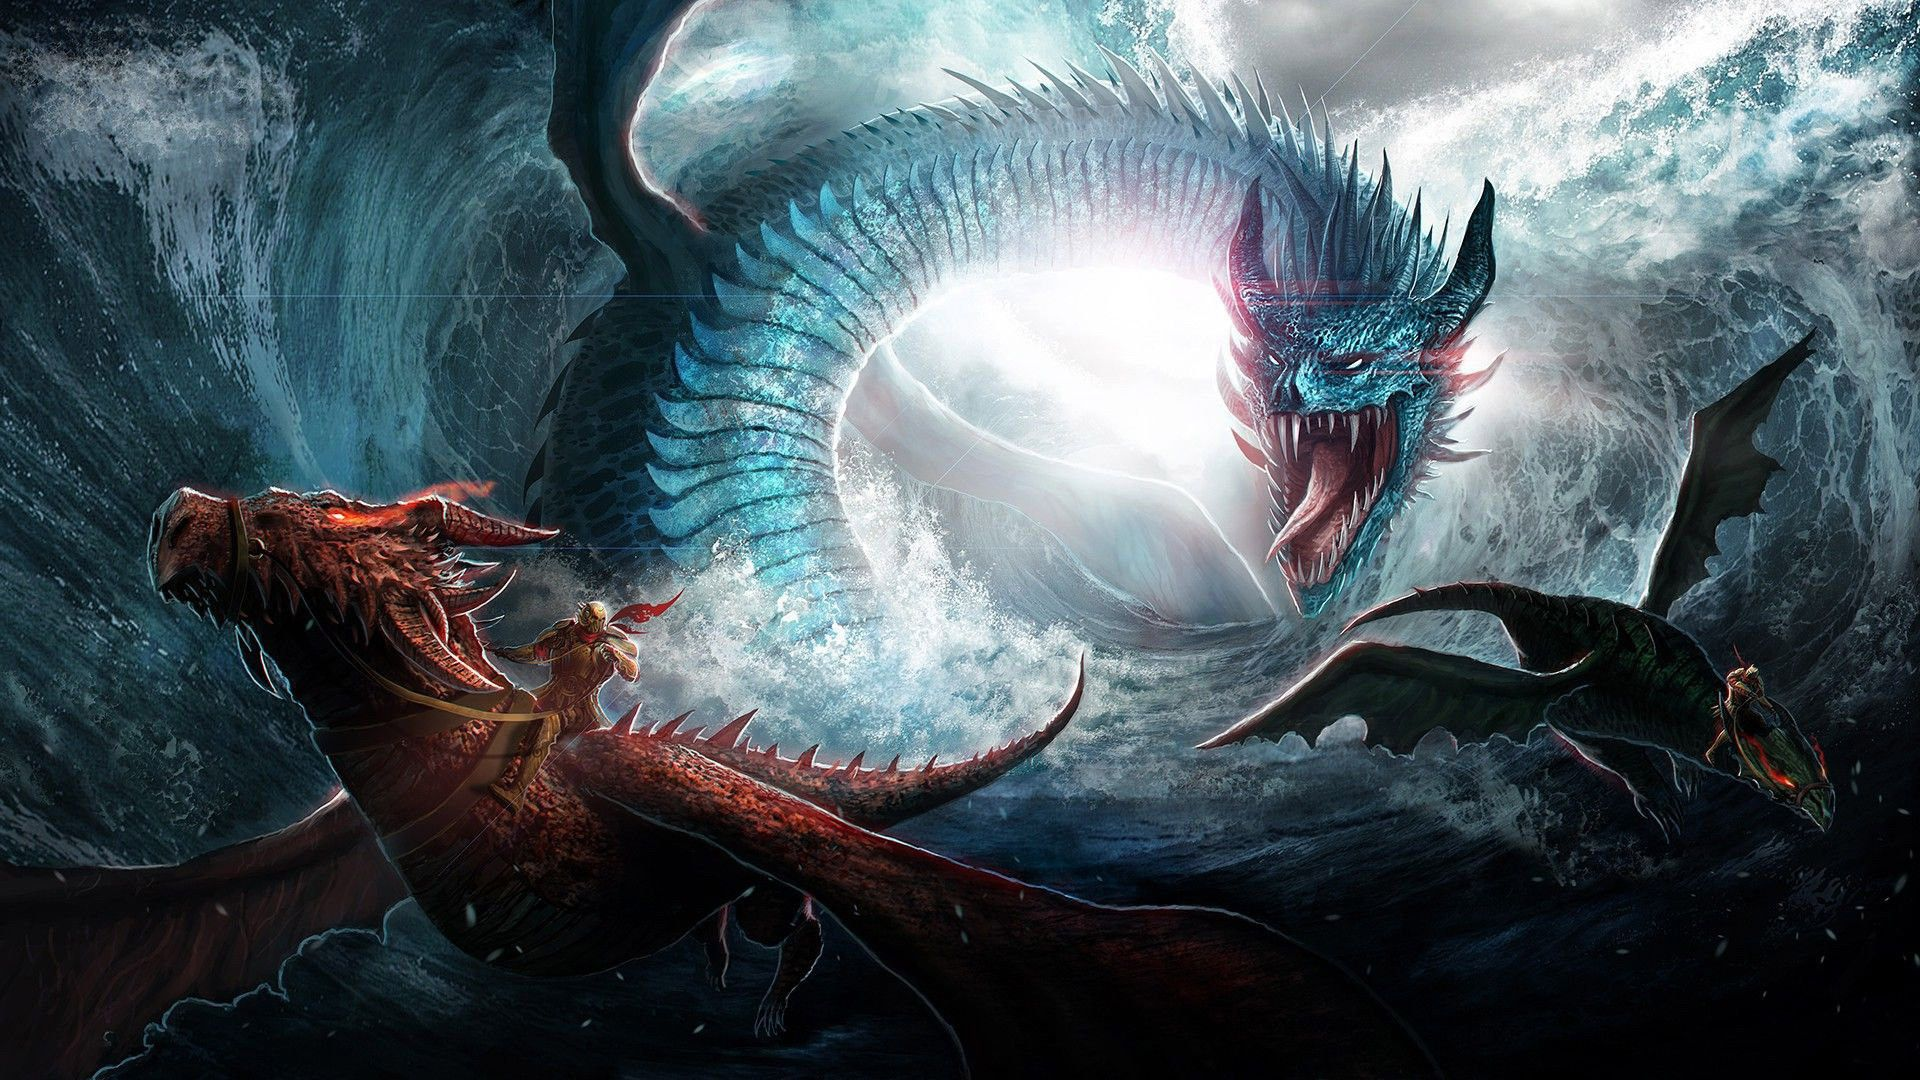 Ice Dragon Game Of Thrones Wallpapers